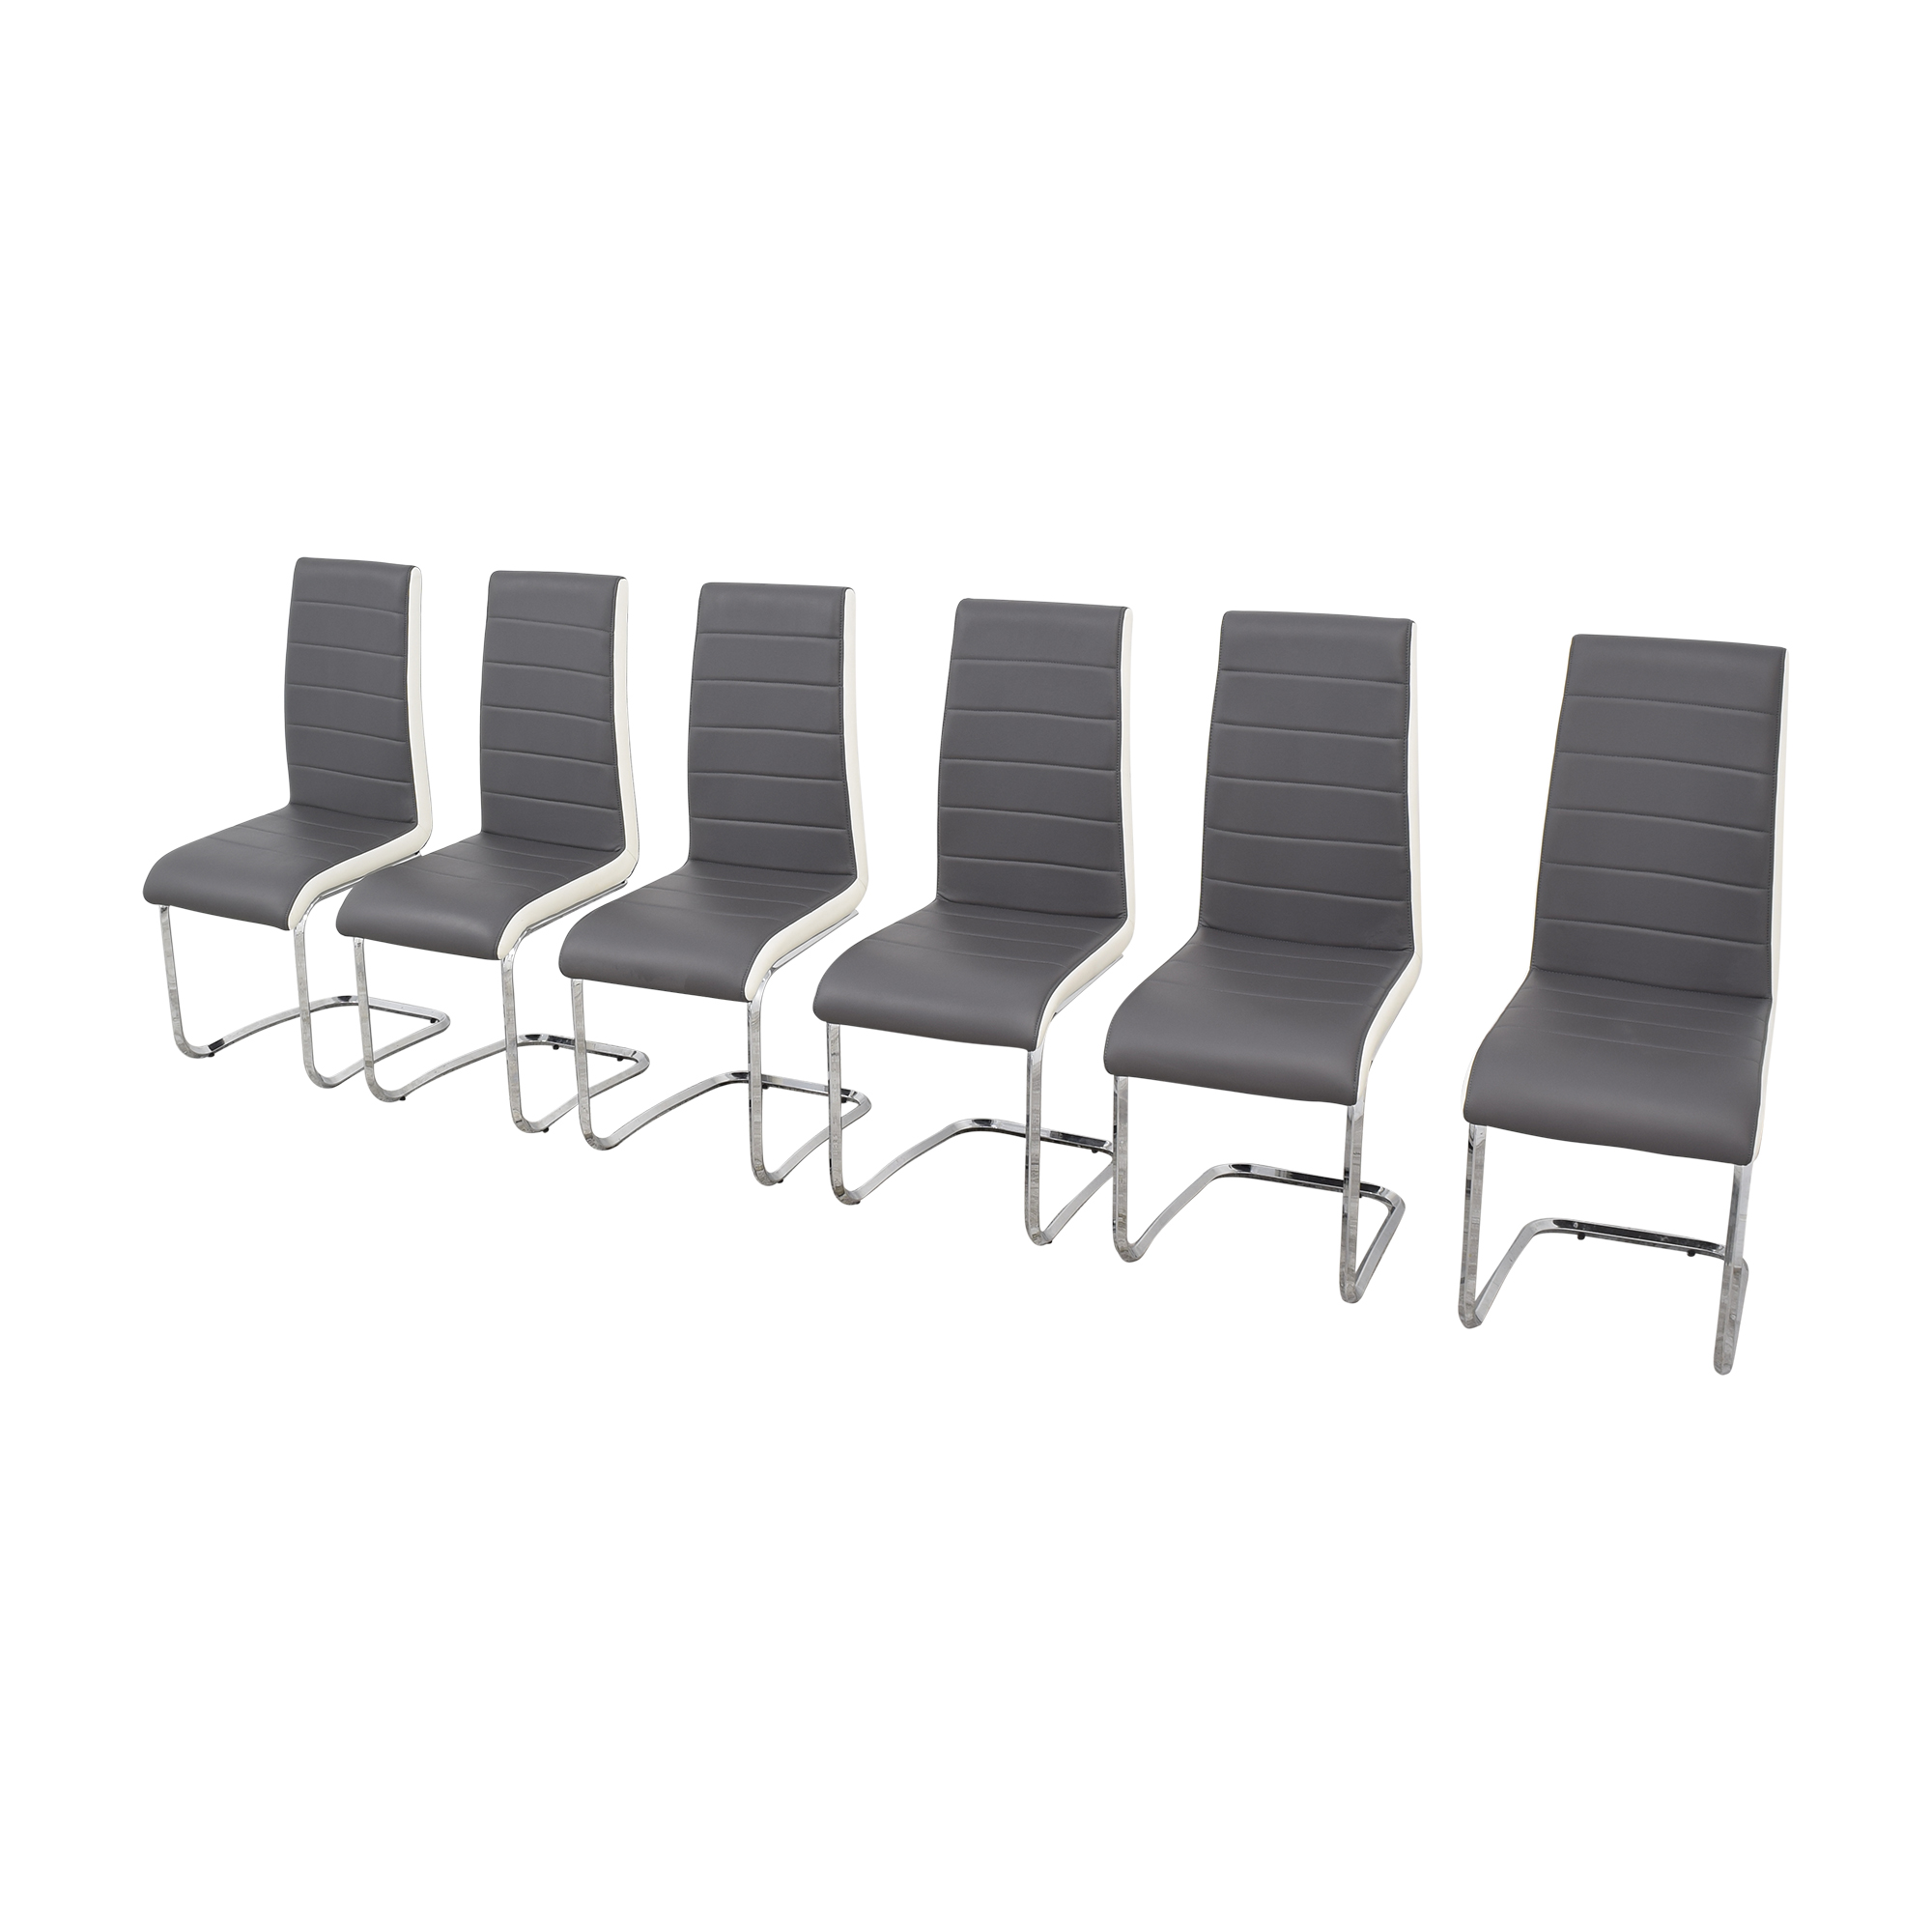 Steve Silver Co Steve Silver Gray and White Retro Dining Chairs Chairs